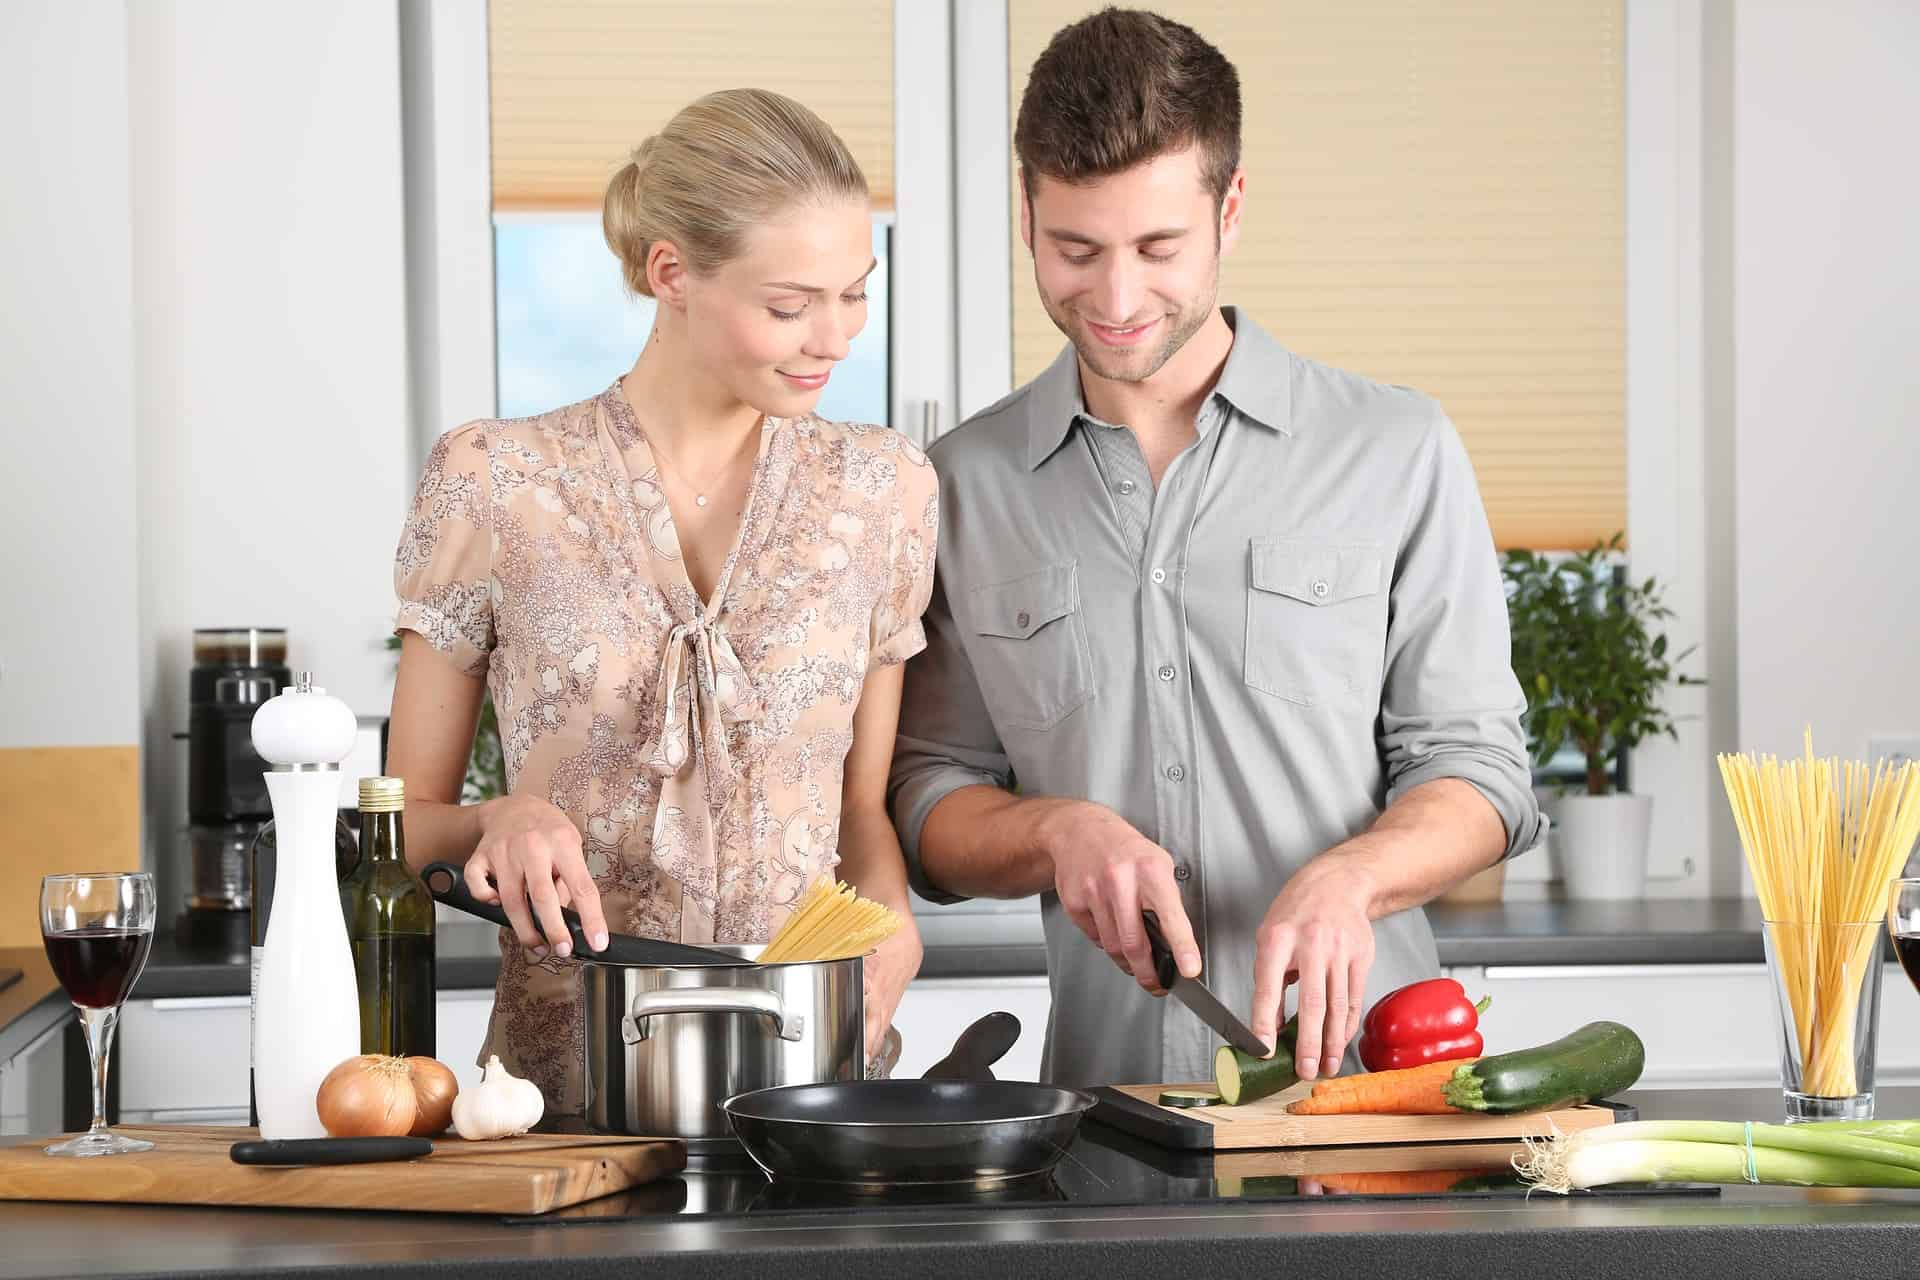 money making hobbies from home - cooking